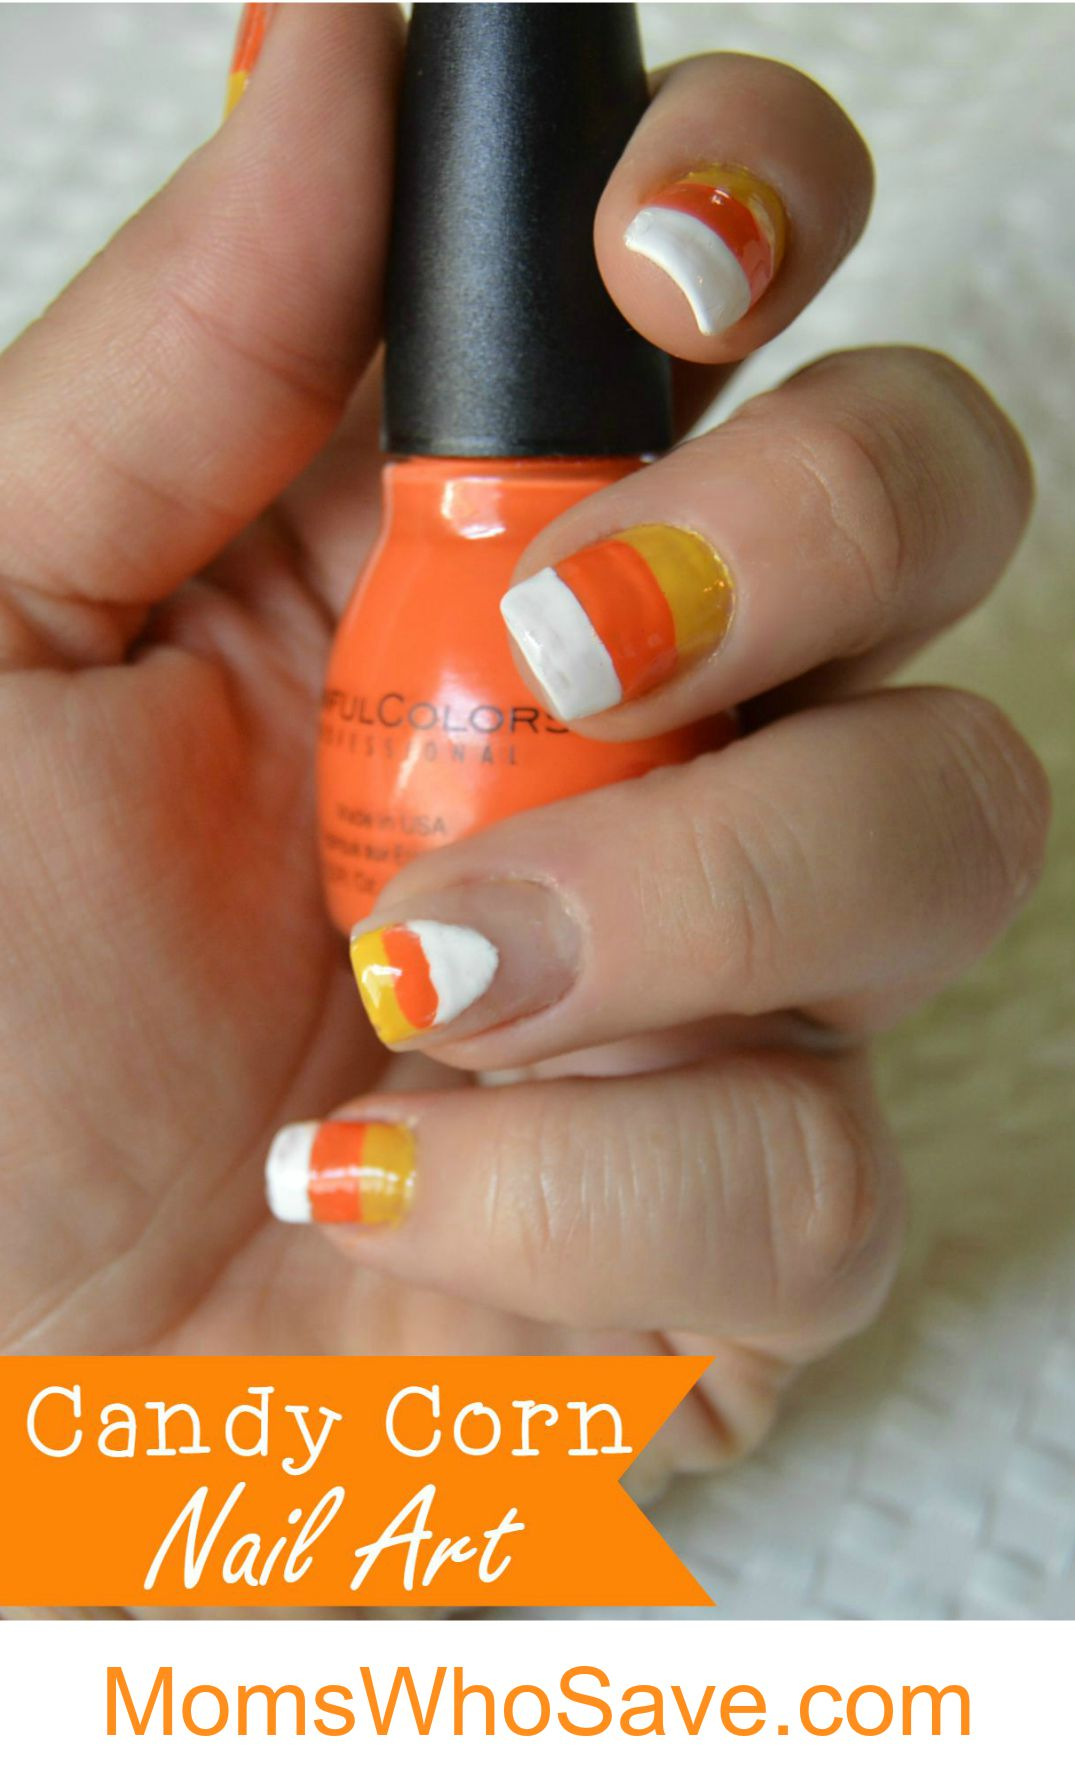 Halloween Candy Corn Nail Art Tutorial Momswhosave